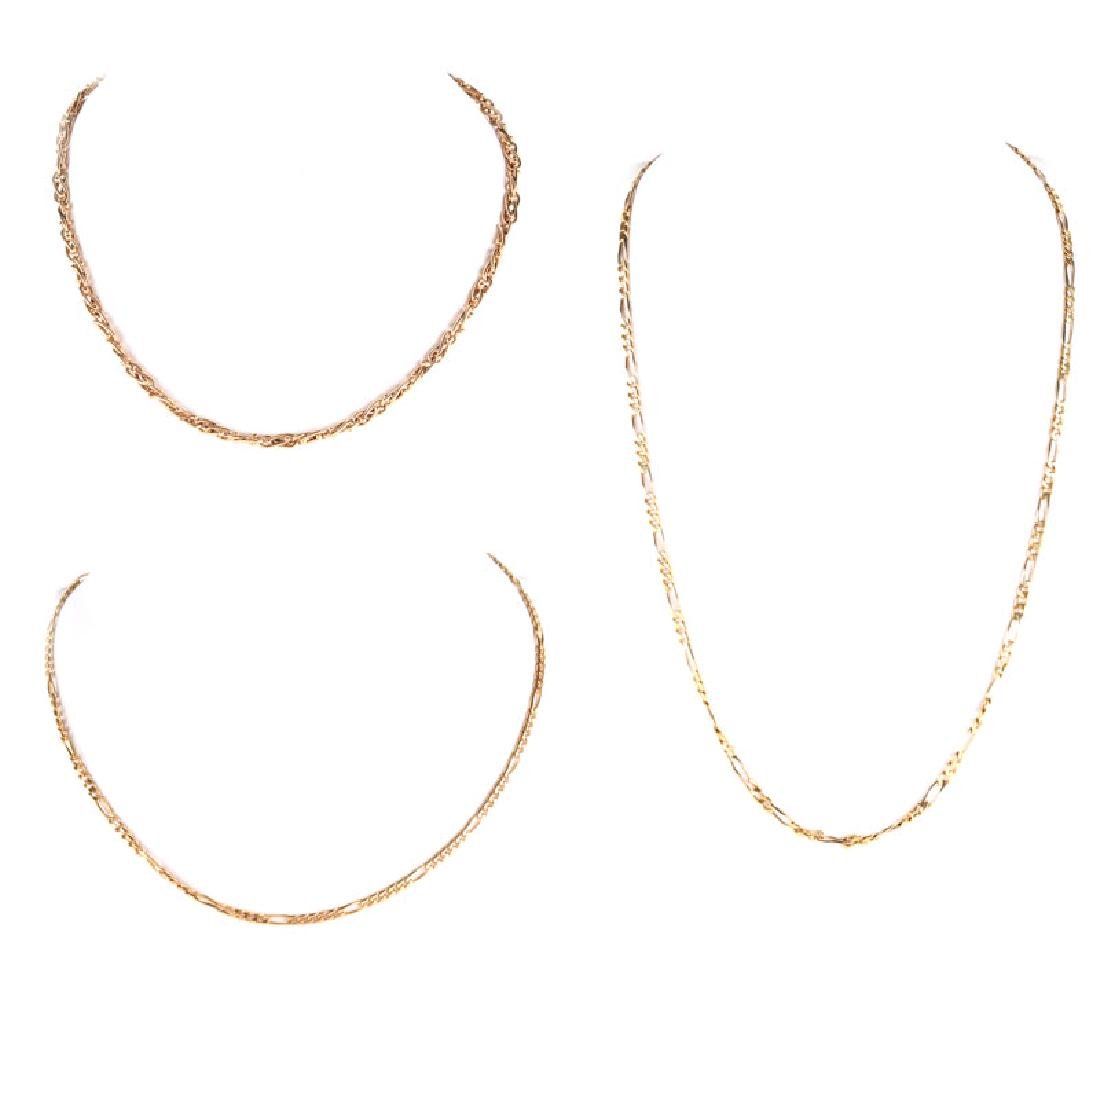 Three (3) Vintage 14 Karat Yellow Gold Link Necklaces.